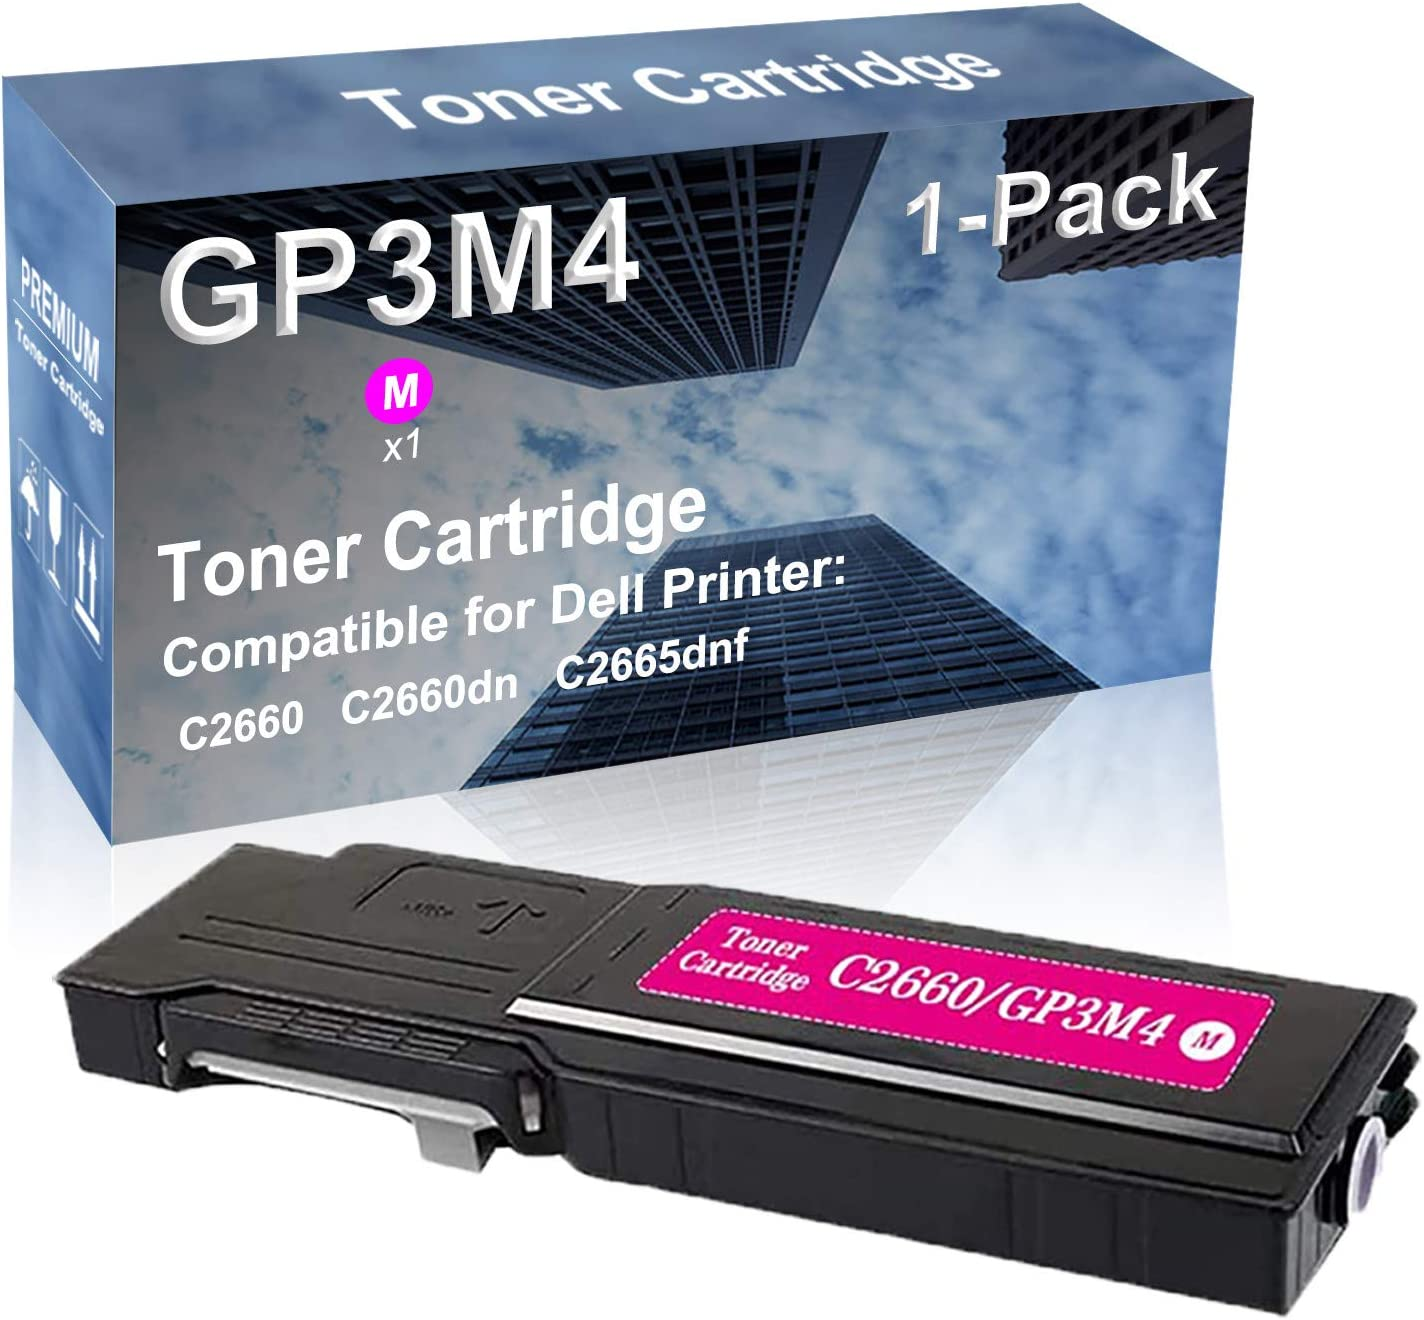 1-Pack (Magenta) Compatible High Yield R9PYX Laser Printer Toner Cartridge Used for Dell C2660 C2660dn C2665dnf Printer